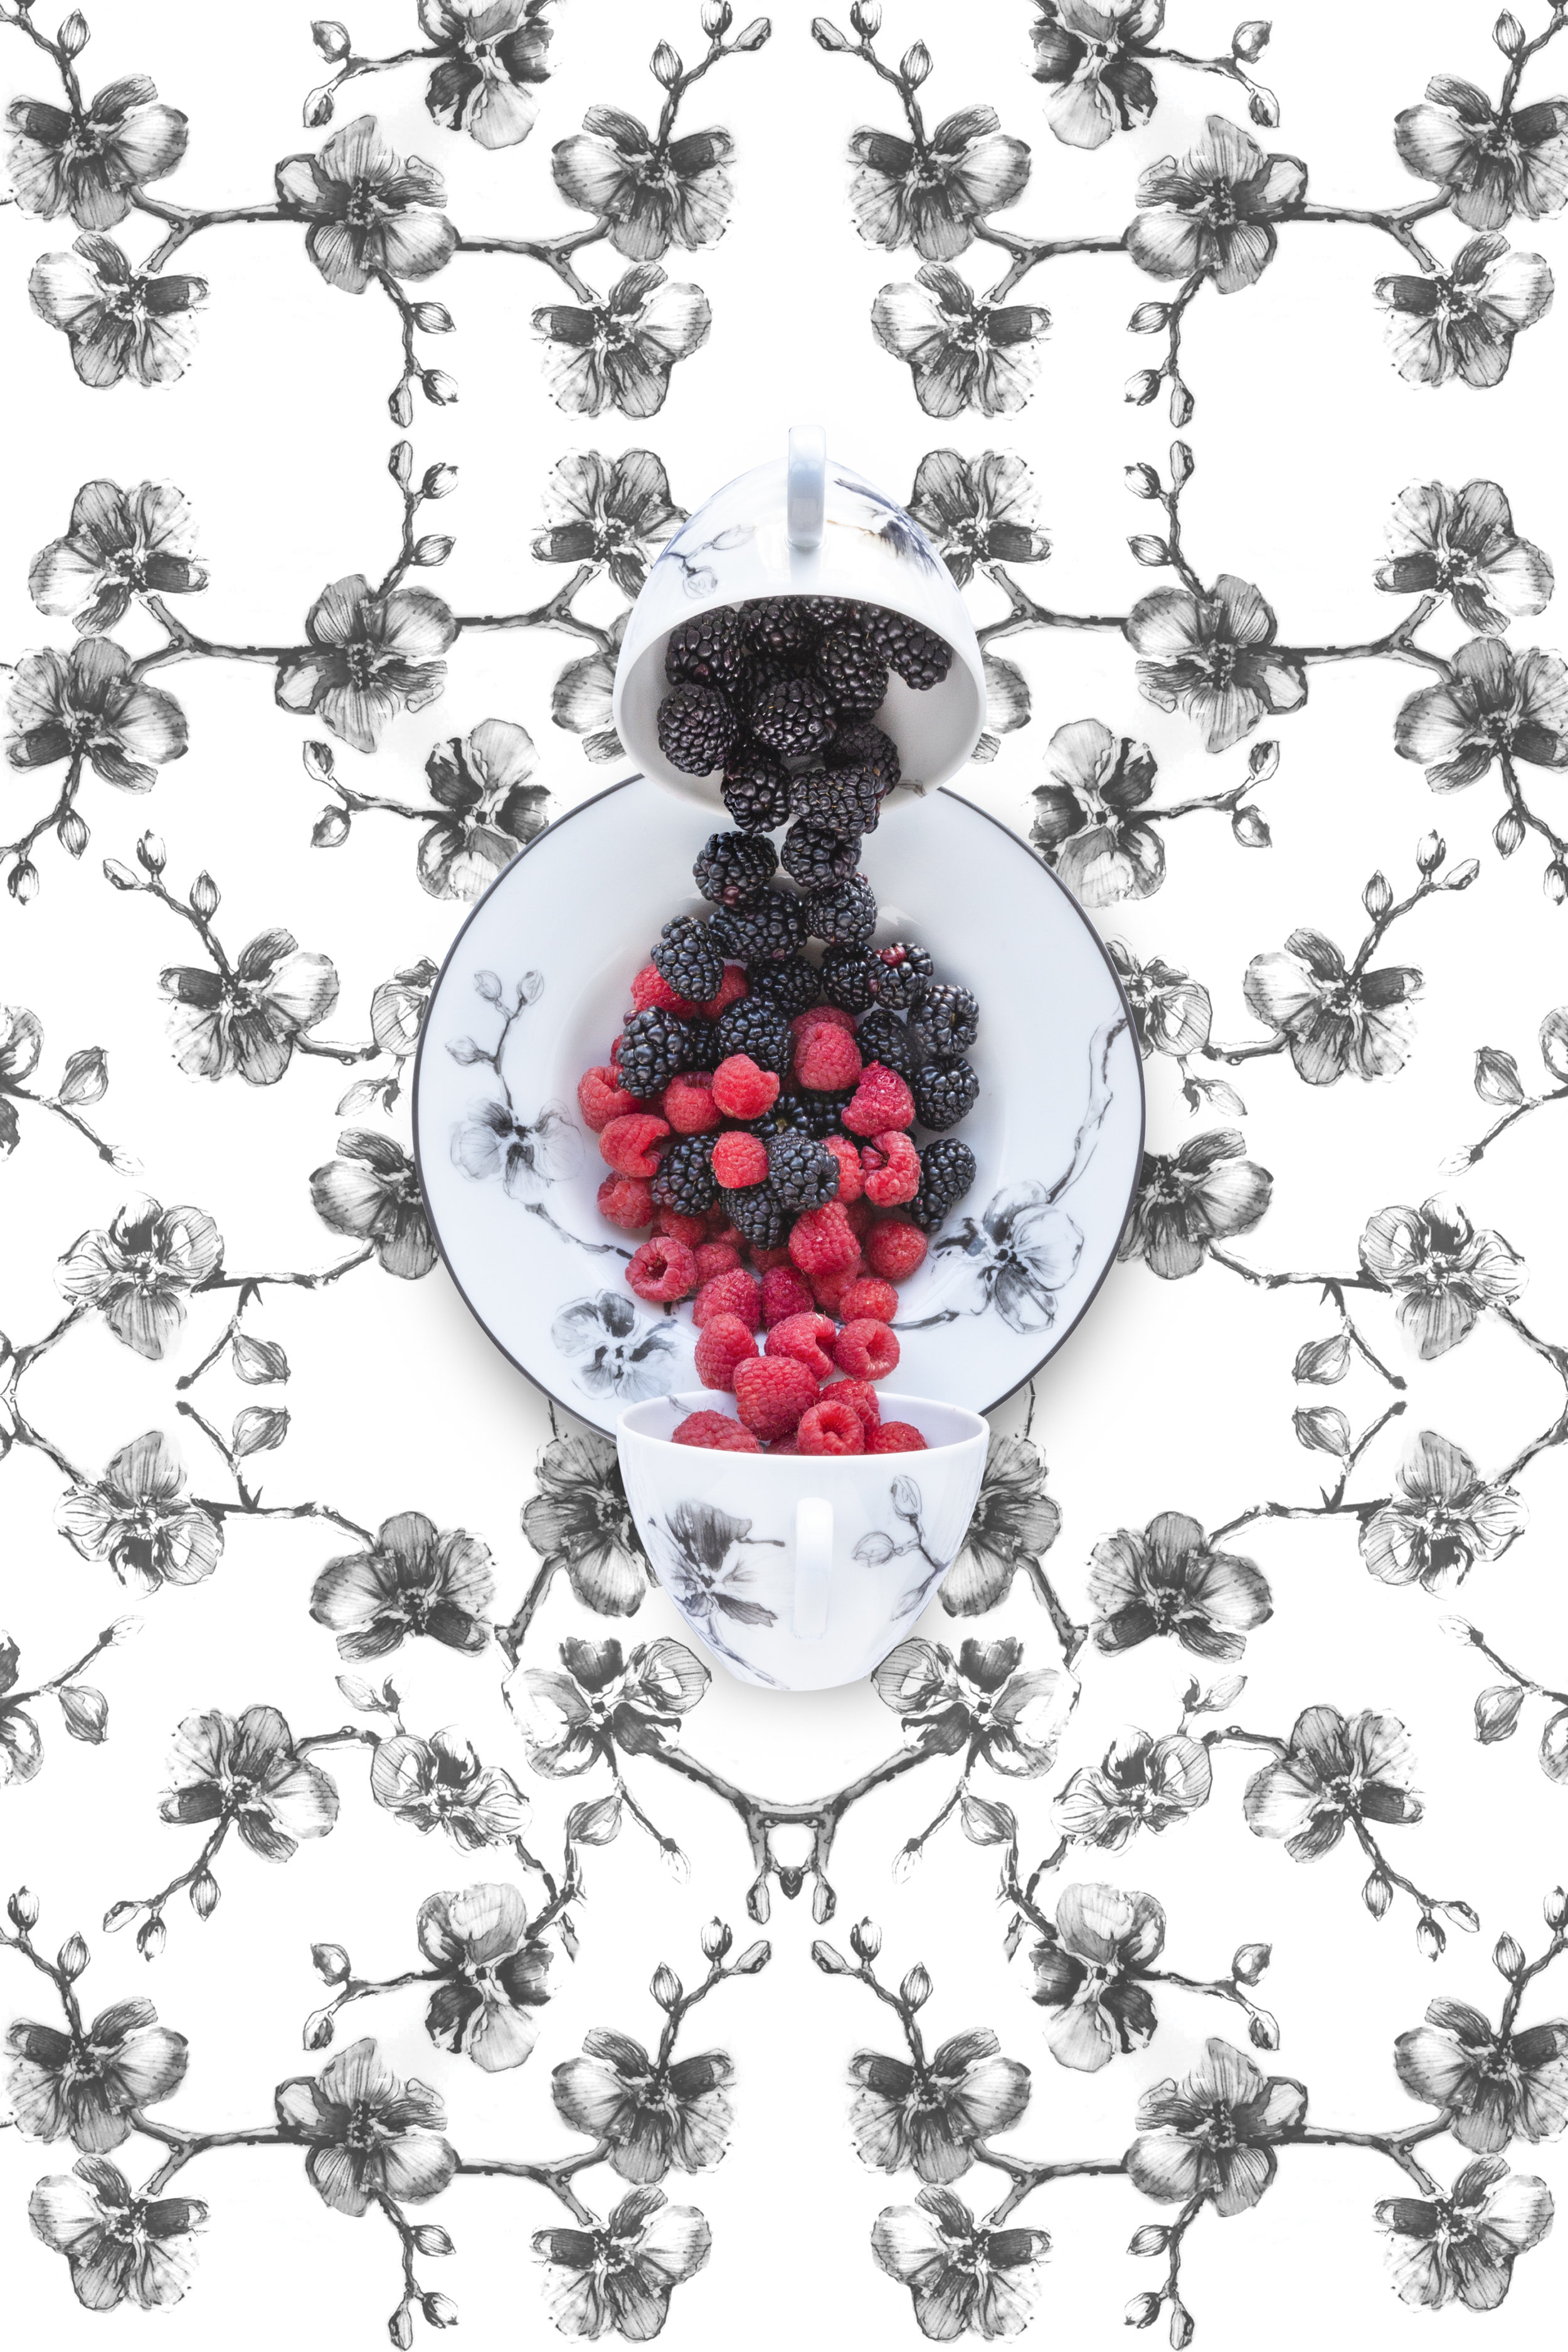 Aram Black Orchid with Berries, 2019